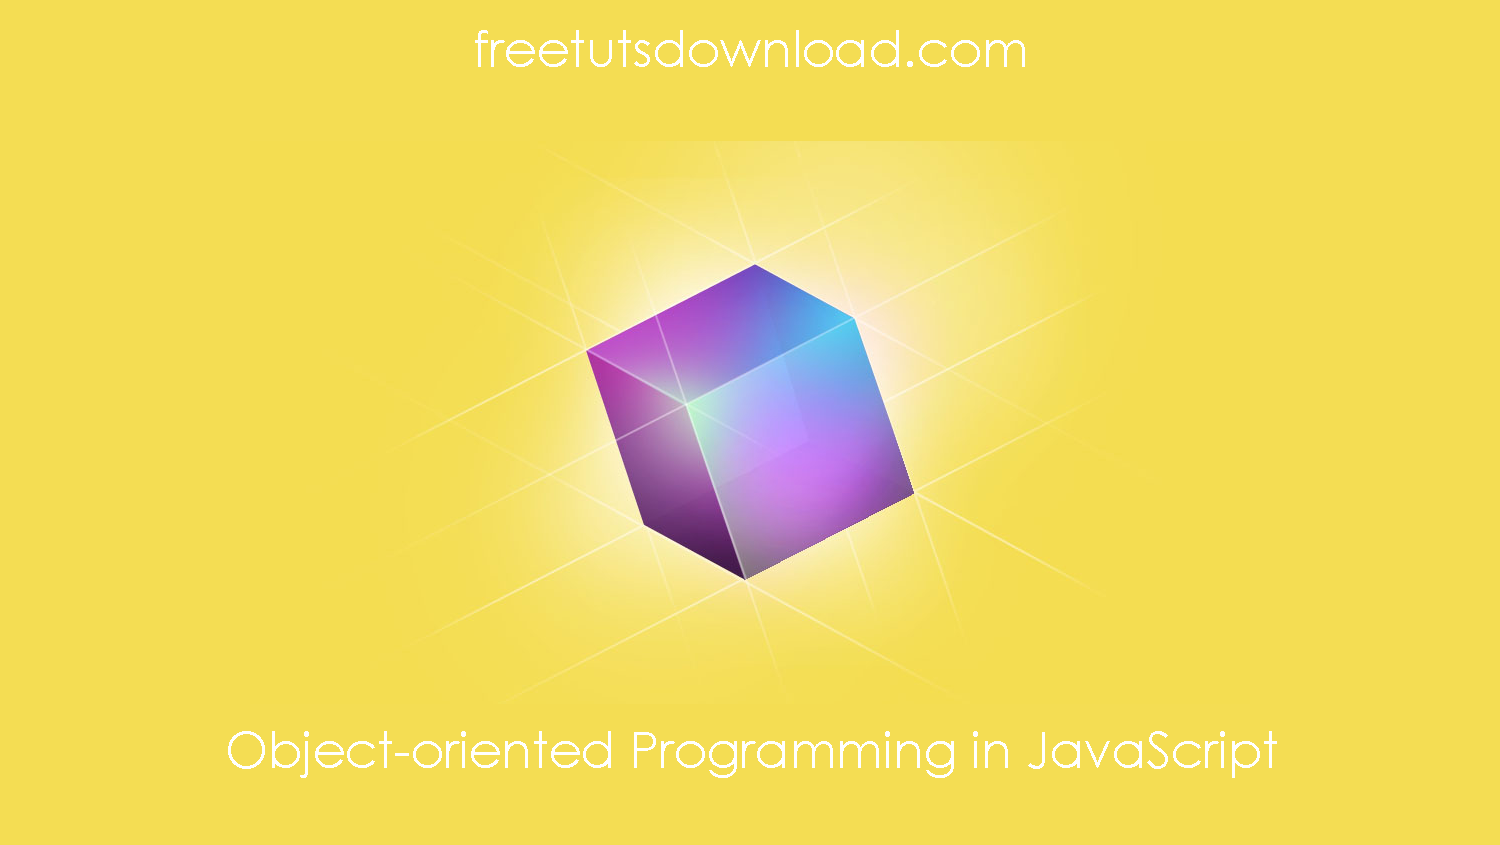 Object-oriented Programming in JavaScript Free Download